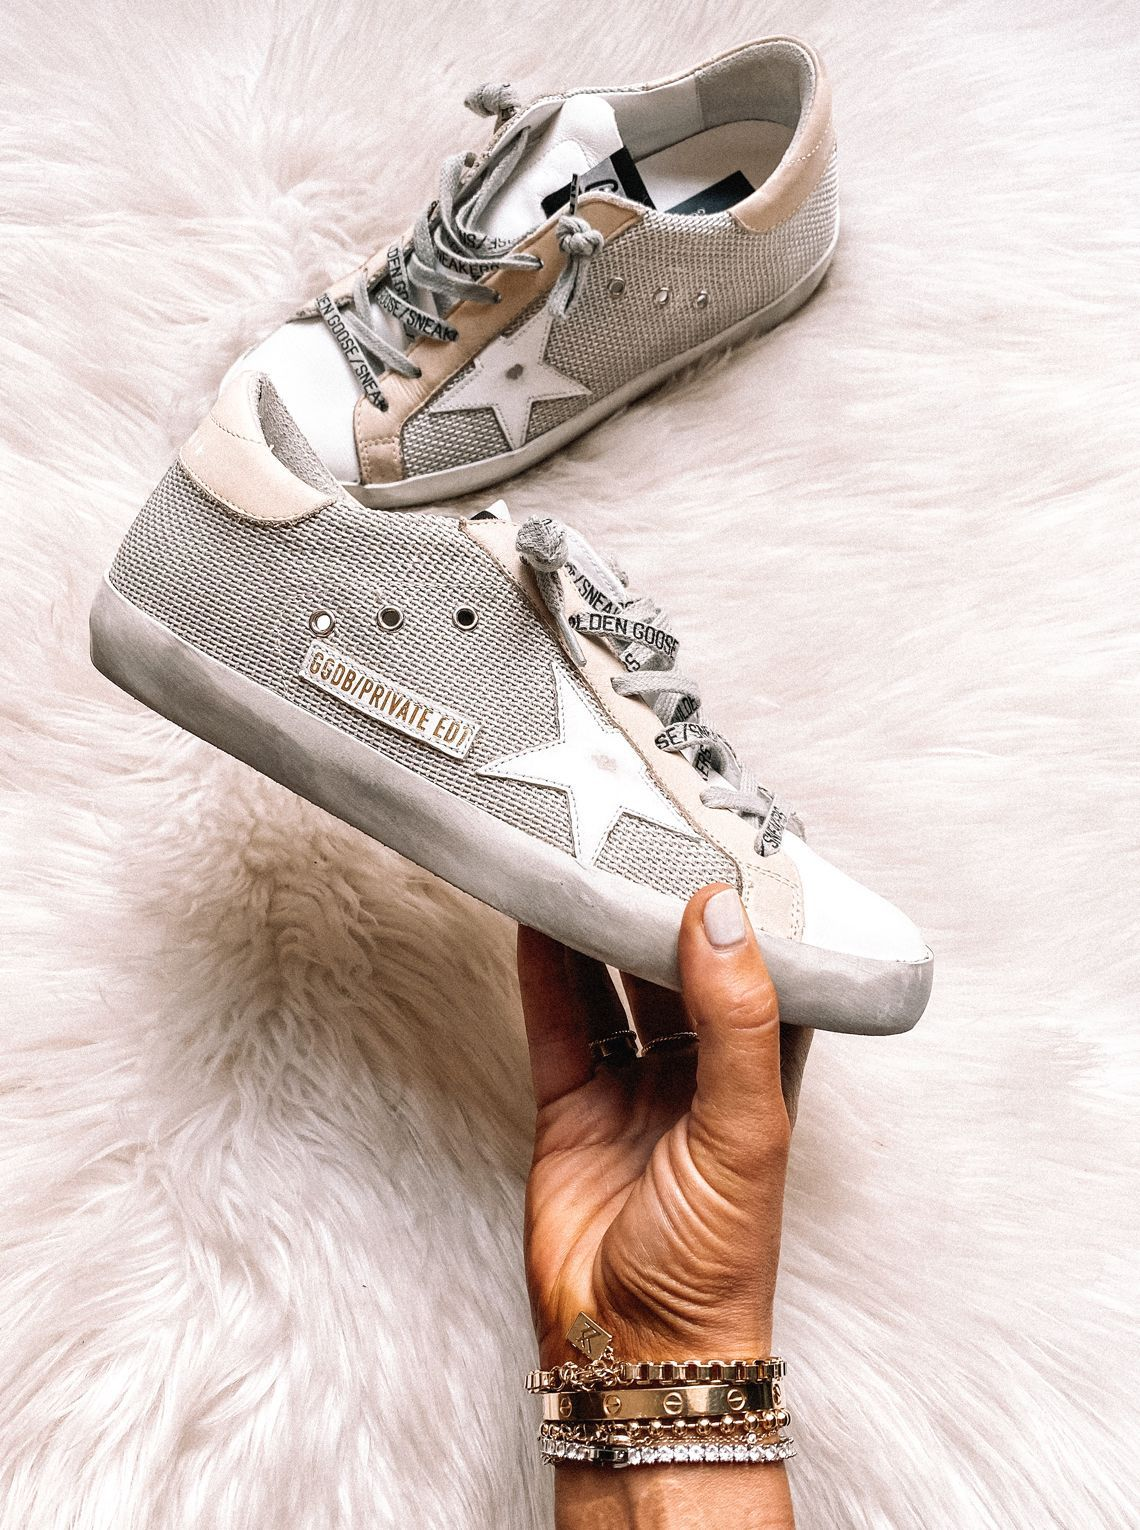 Neutral Golden Goose Sneakers, How to